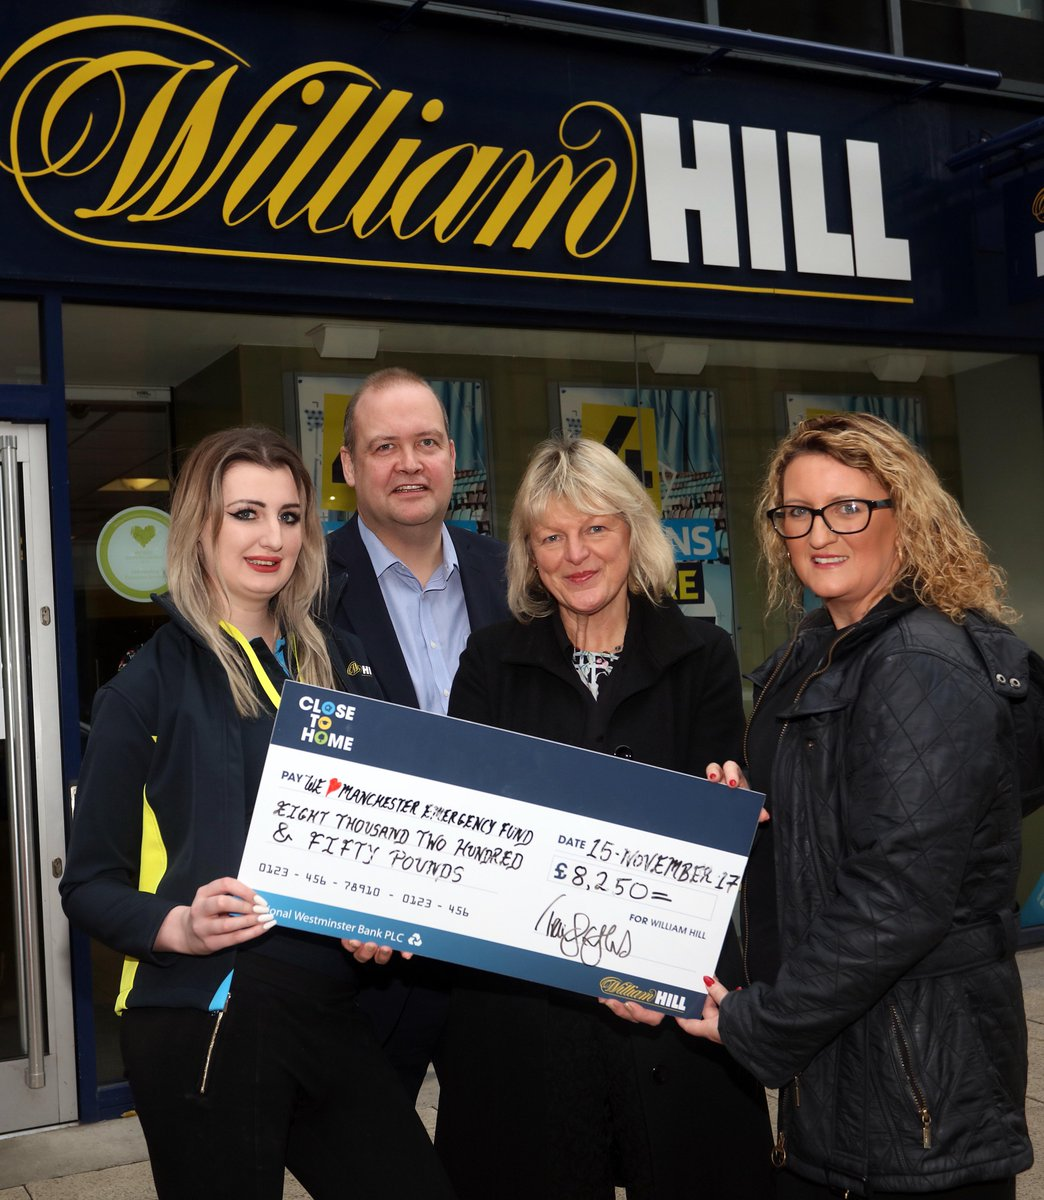 test Twitter Media - WOW!!! @WilliamHill raised a whopping £8,000 to help those affected by the Manchester Arena attack. Your support will go a long way. THANK YOU. https://t.co/fcdNPxYlMn https://t.co/wLjtXXHVbD